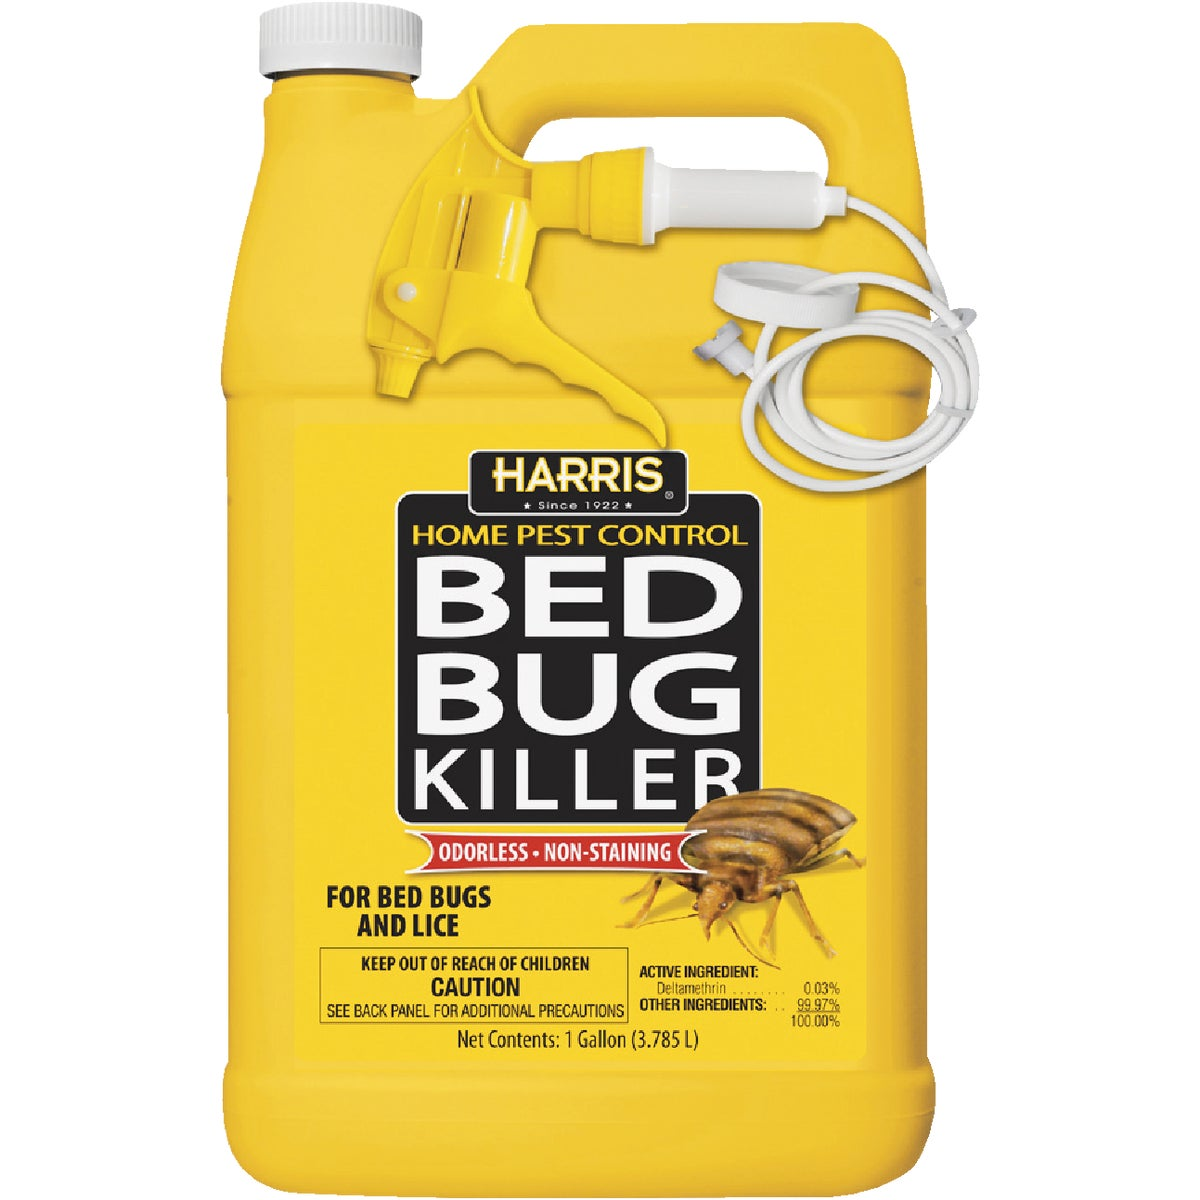 1G BED BUG KILLER - HBB-128 by Pf Harris Mfg Co Llc